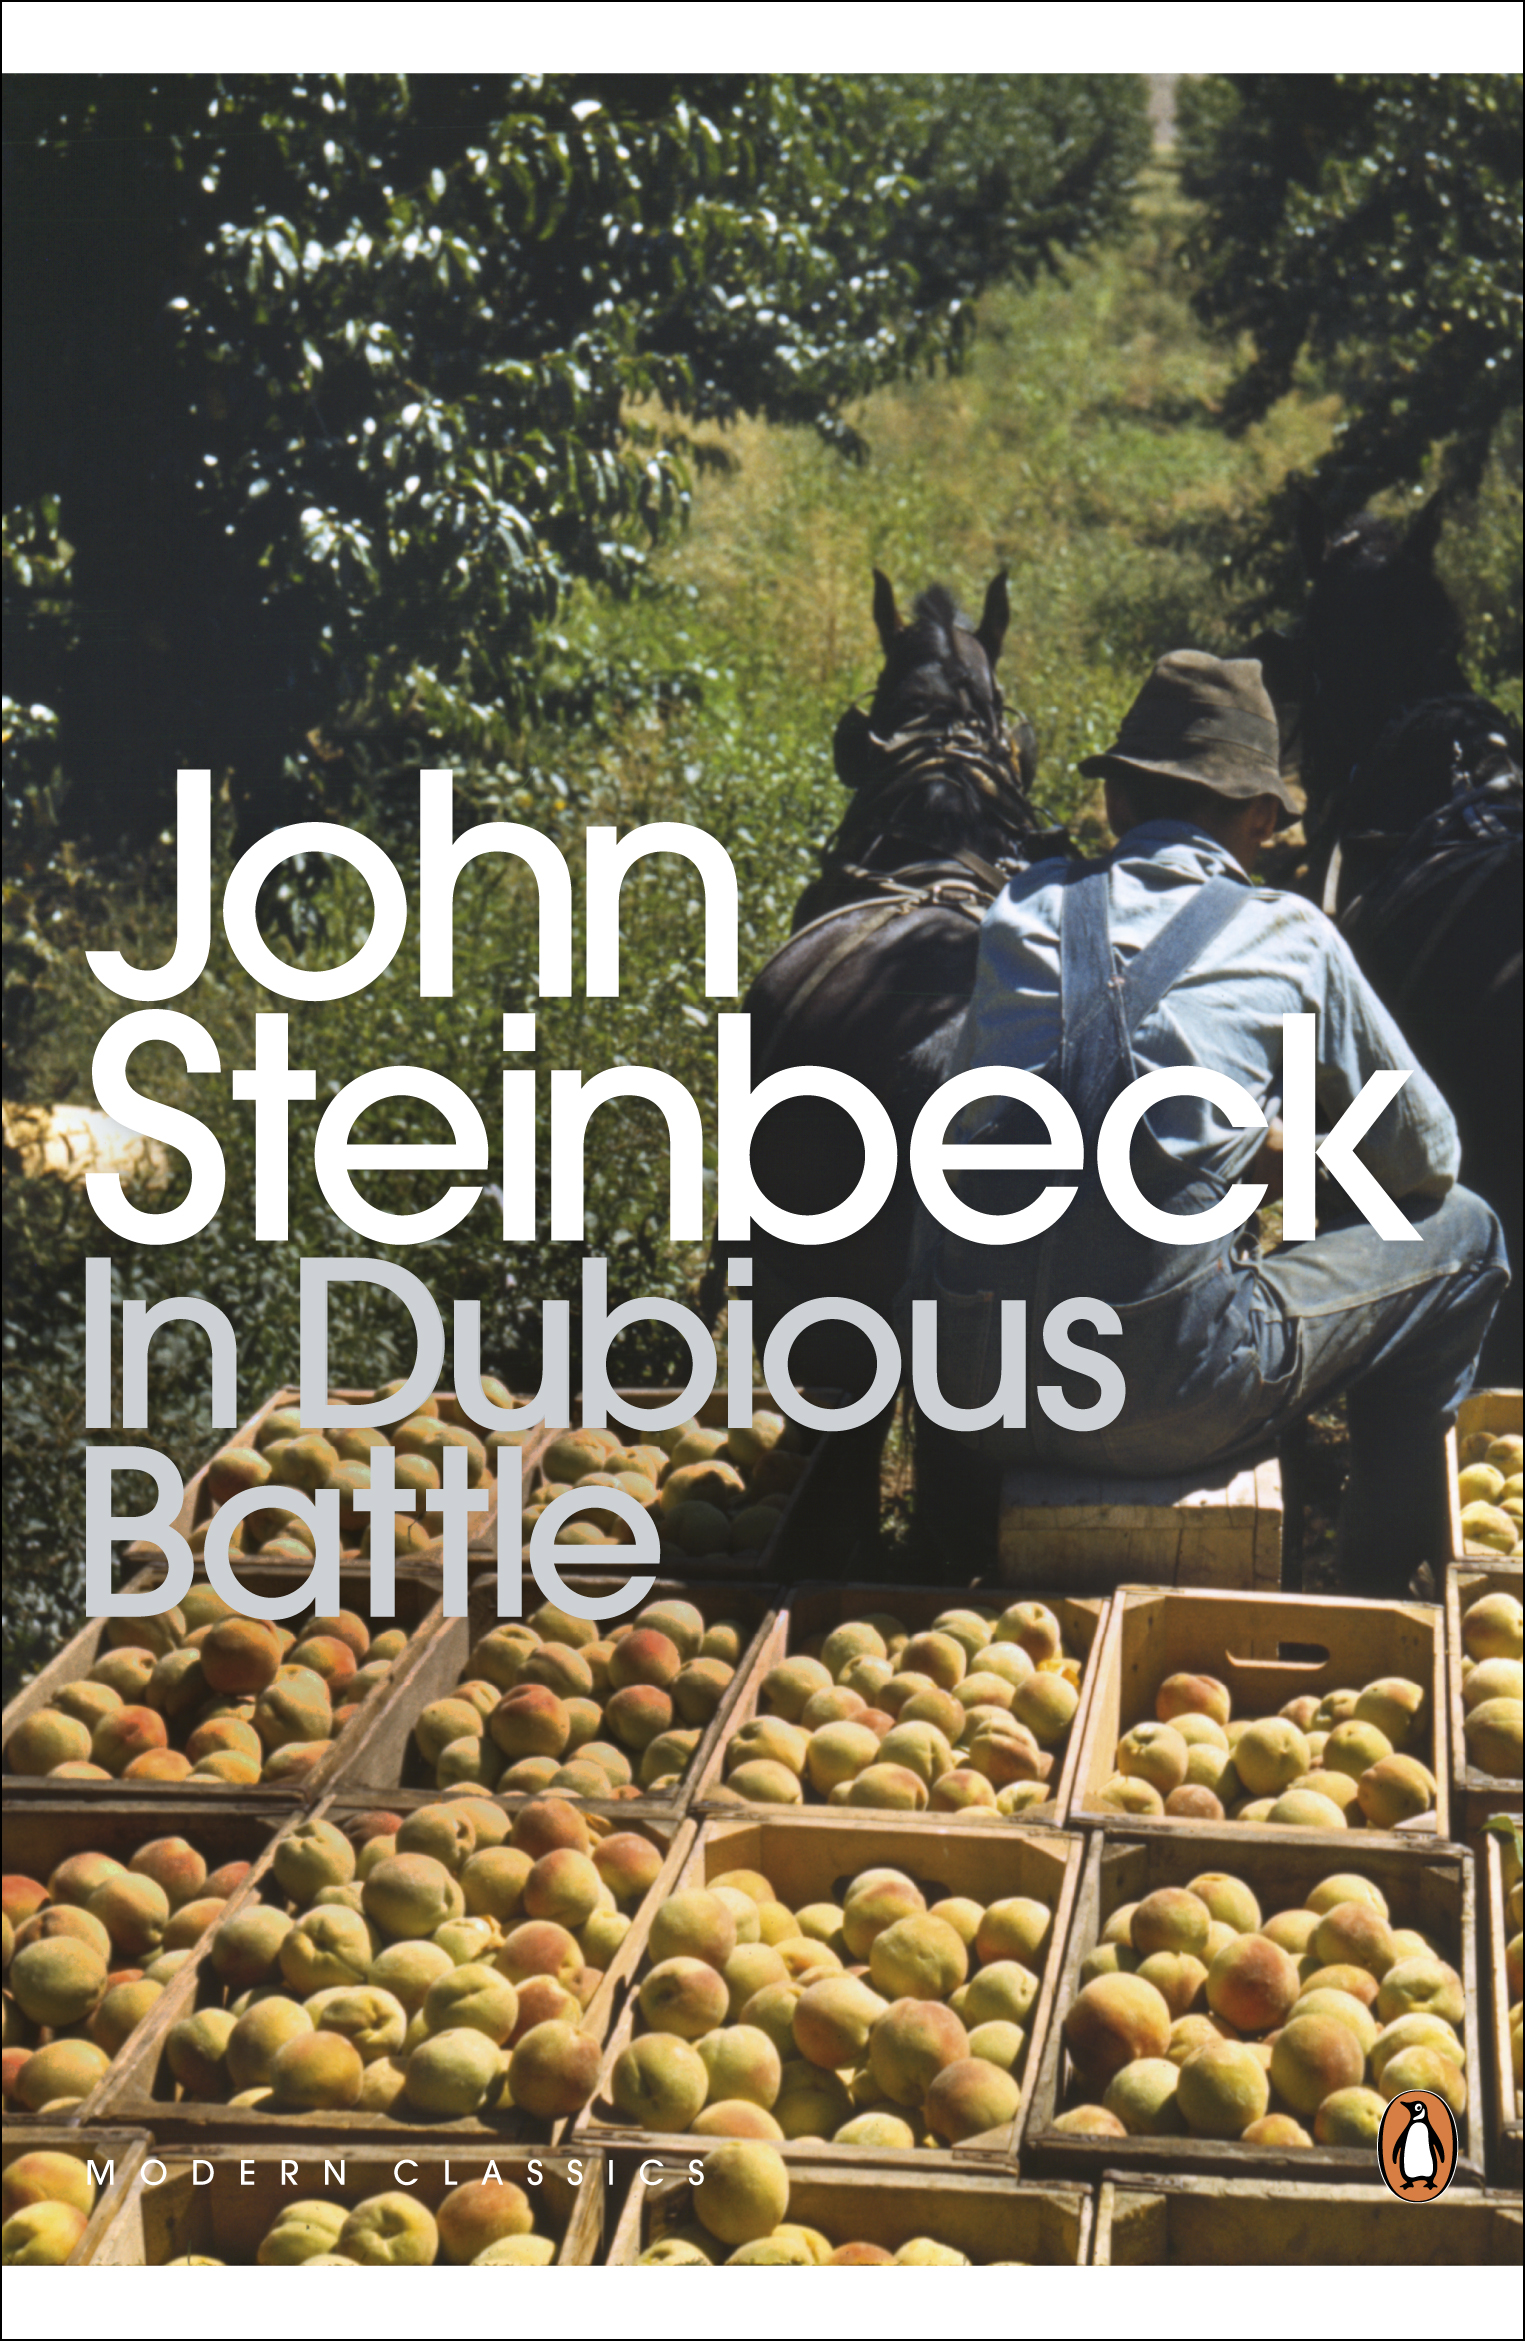 a story of a young mans struggle for identity in john steinbecks in dubious battle Steinbeck, john (27 february 1902-20 december 1968), author, was born john ernst steinbeck, jr, in salinas, california, the son of john ernst steinbeck, a businessman, accountant, and manager, and olive hamilton, a former teacher.